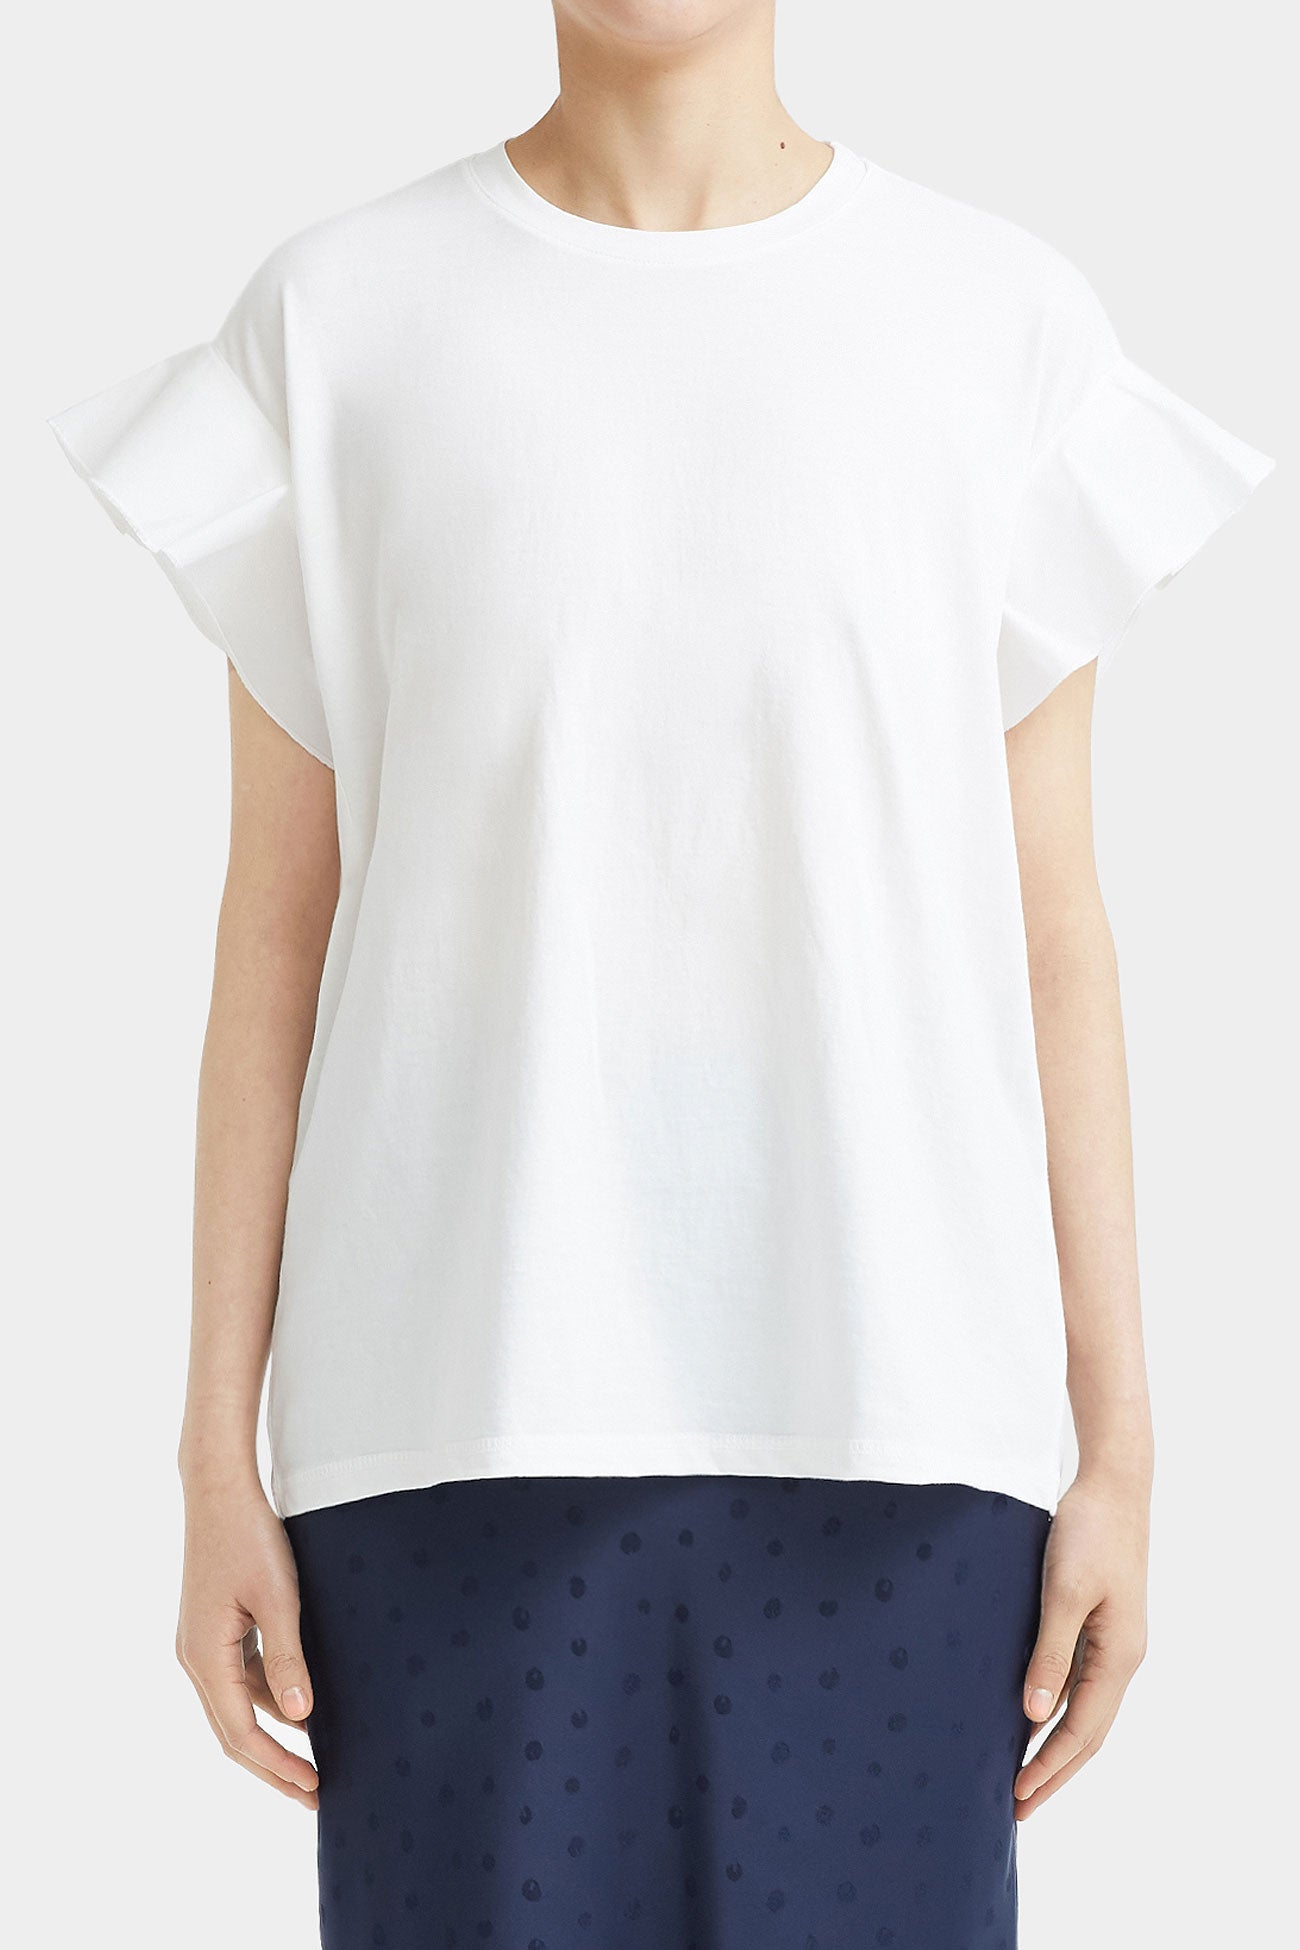 WHITE DIADRA WING T-SHIRT